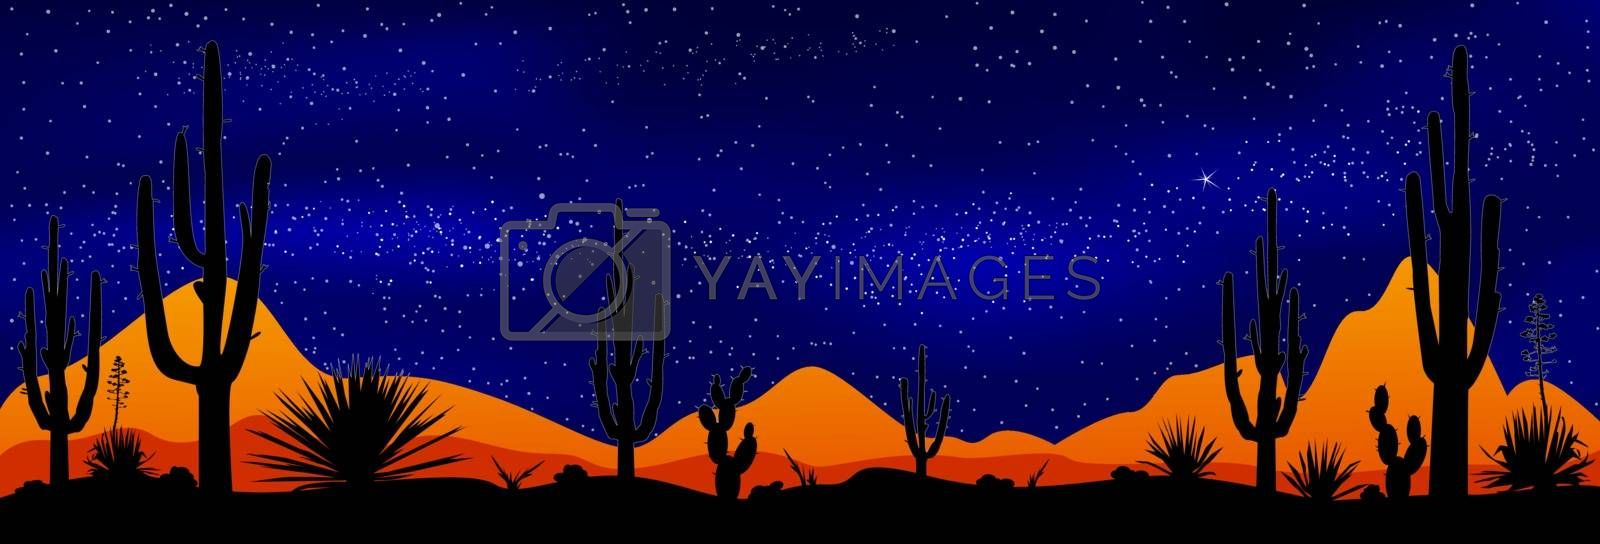 Desert with cacti on the background of the night starry sky. Stony desert at night. Desert landscape, night scene.